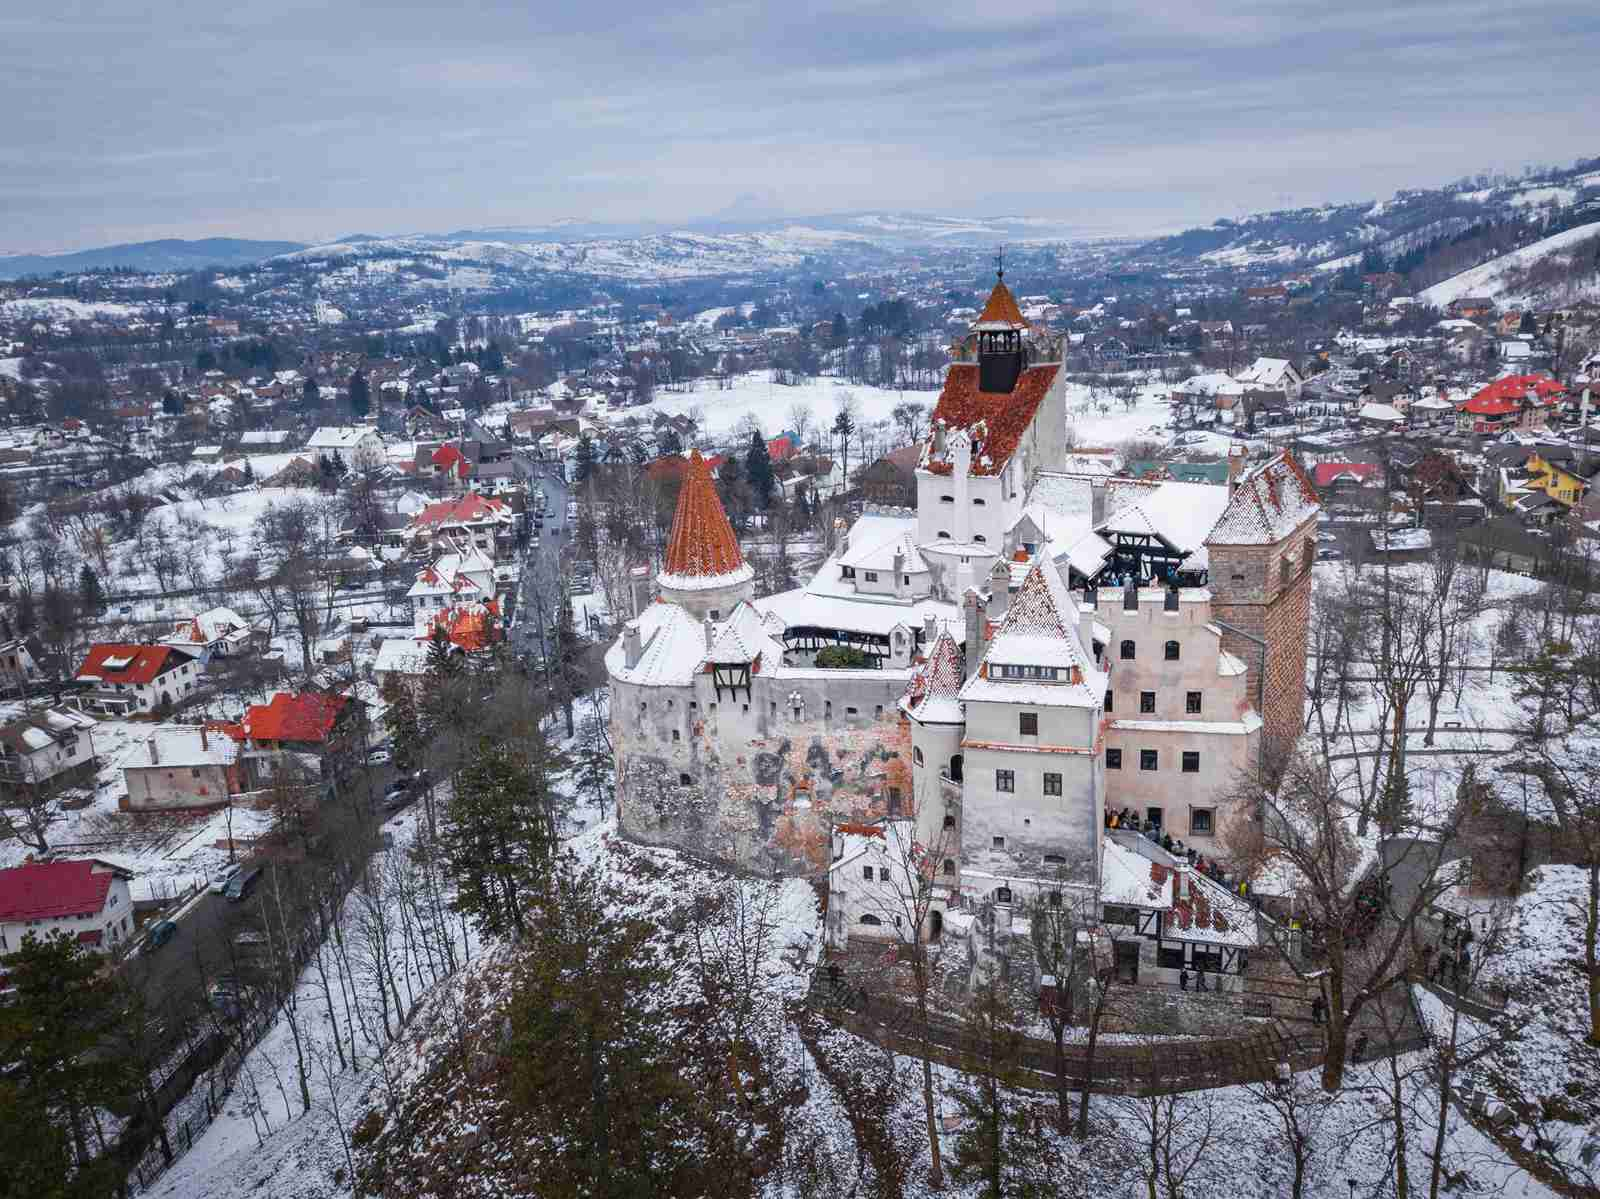 Bran Castle outside of Buchartest in Romania. (Photo by Matthew Williams Ellis/robertharding/Getty Images)